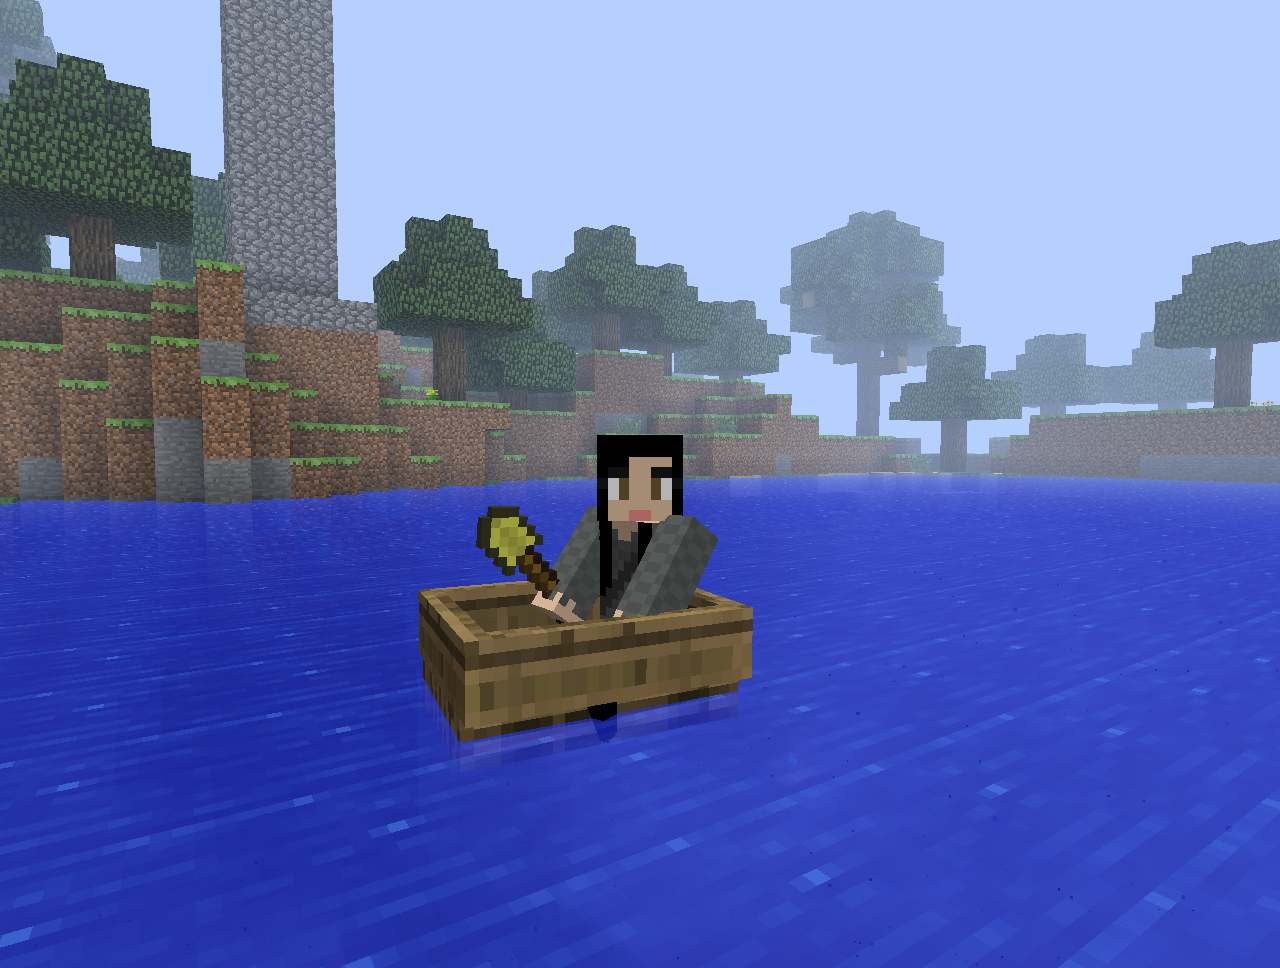 Minecraft boat and gold shovel